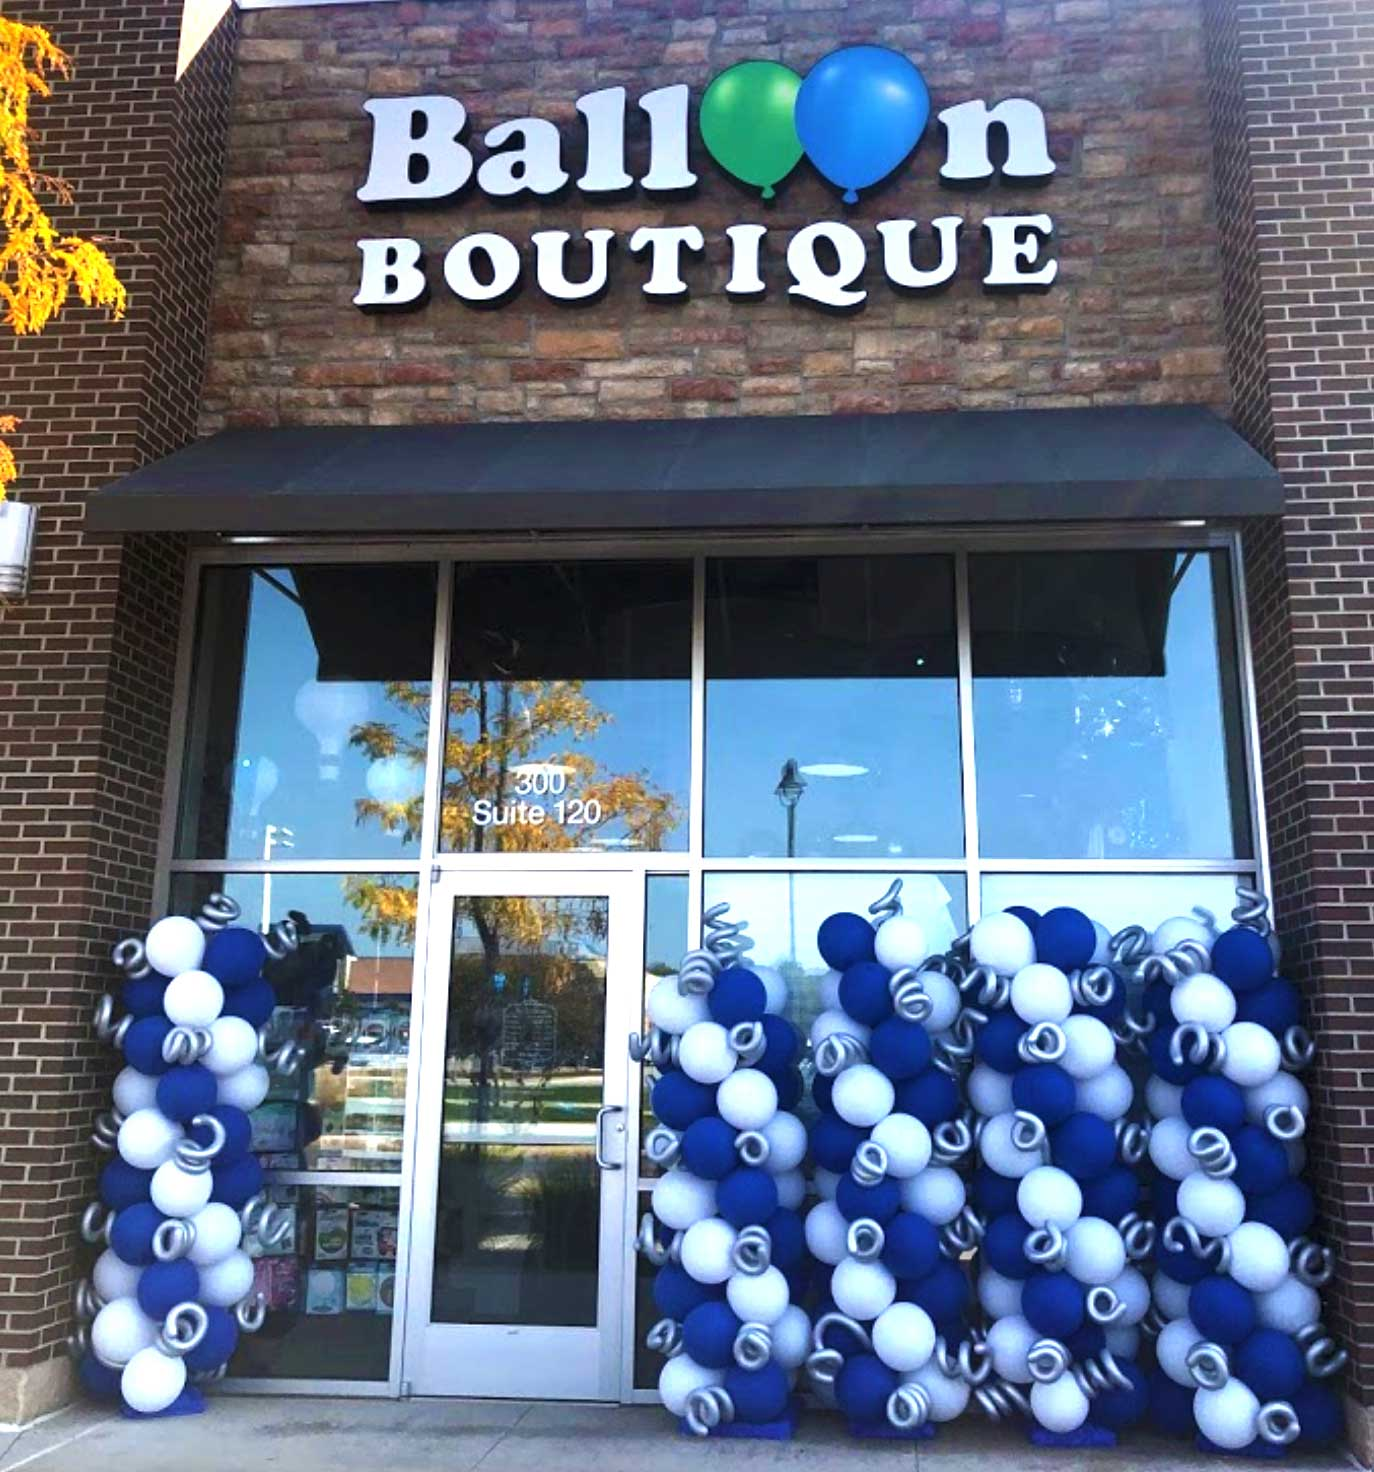 Store Front Balloon Boutique